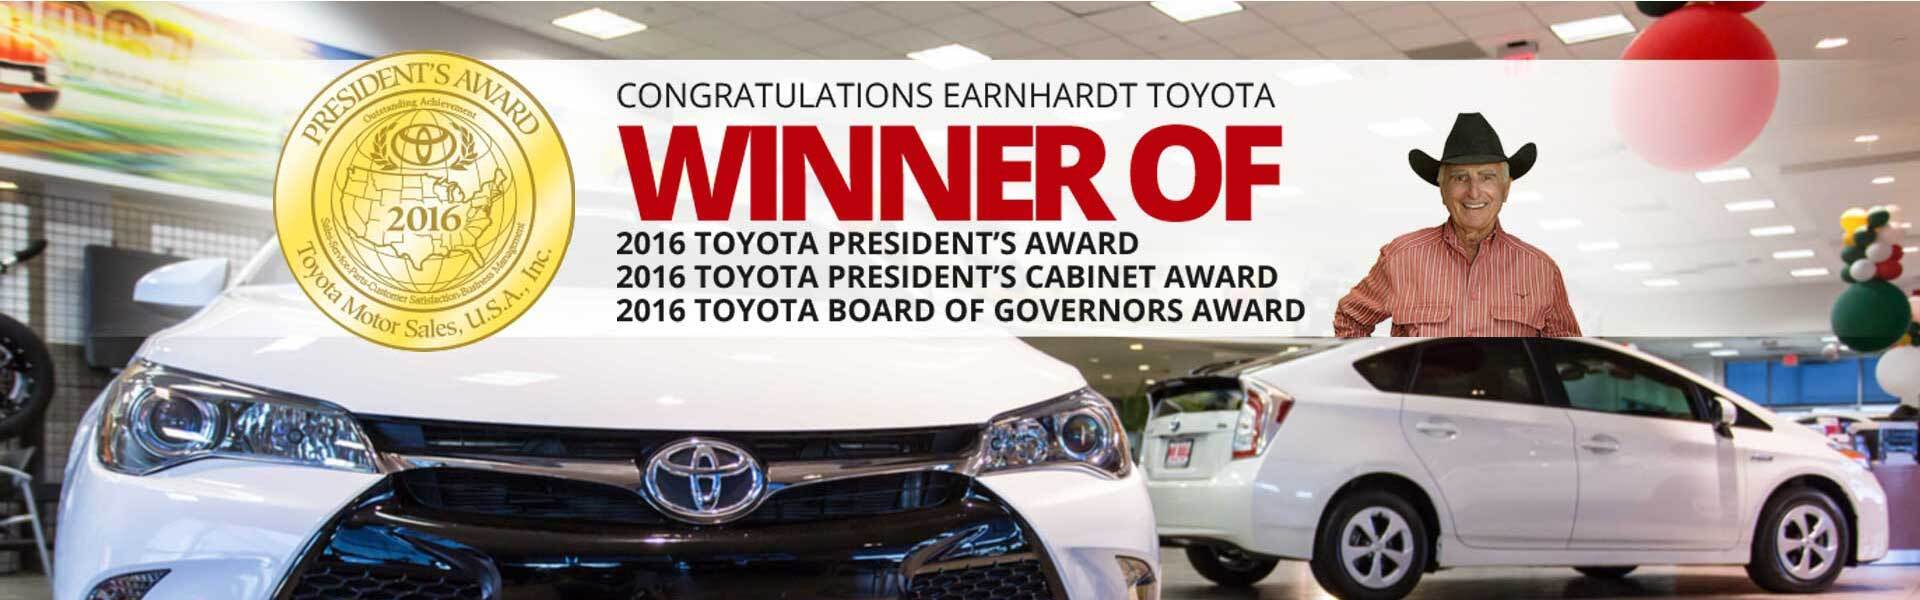 Earnhardt Toyota Scion Arizona Toyota Dealership